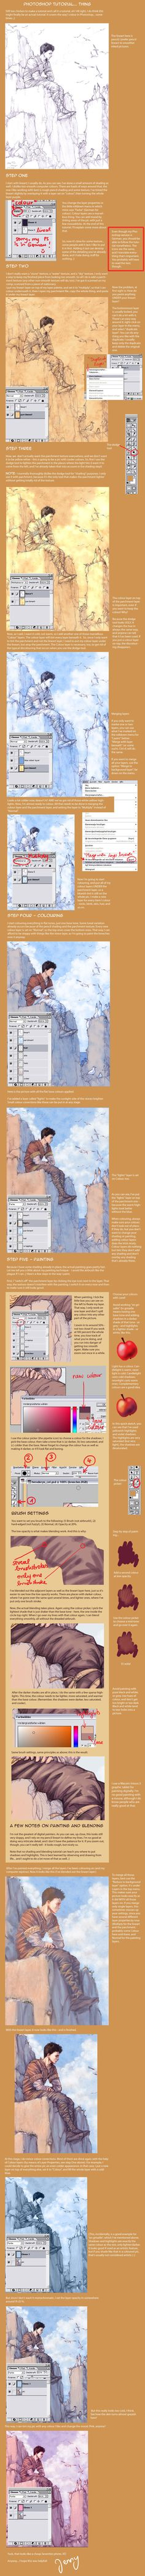 Colouring in Photoshop by =Gold-Seven on deviantART